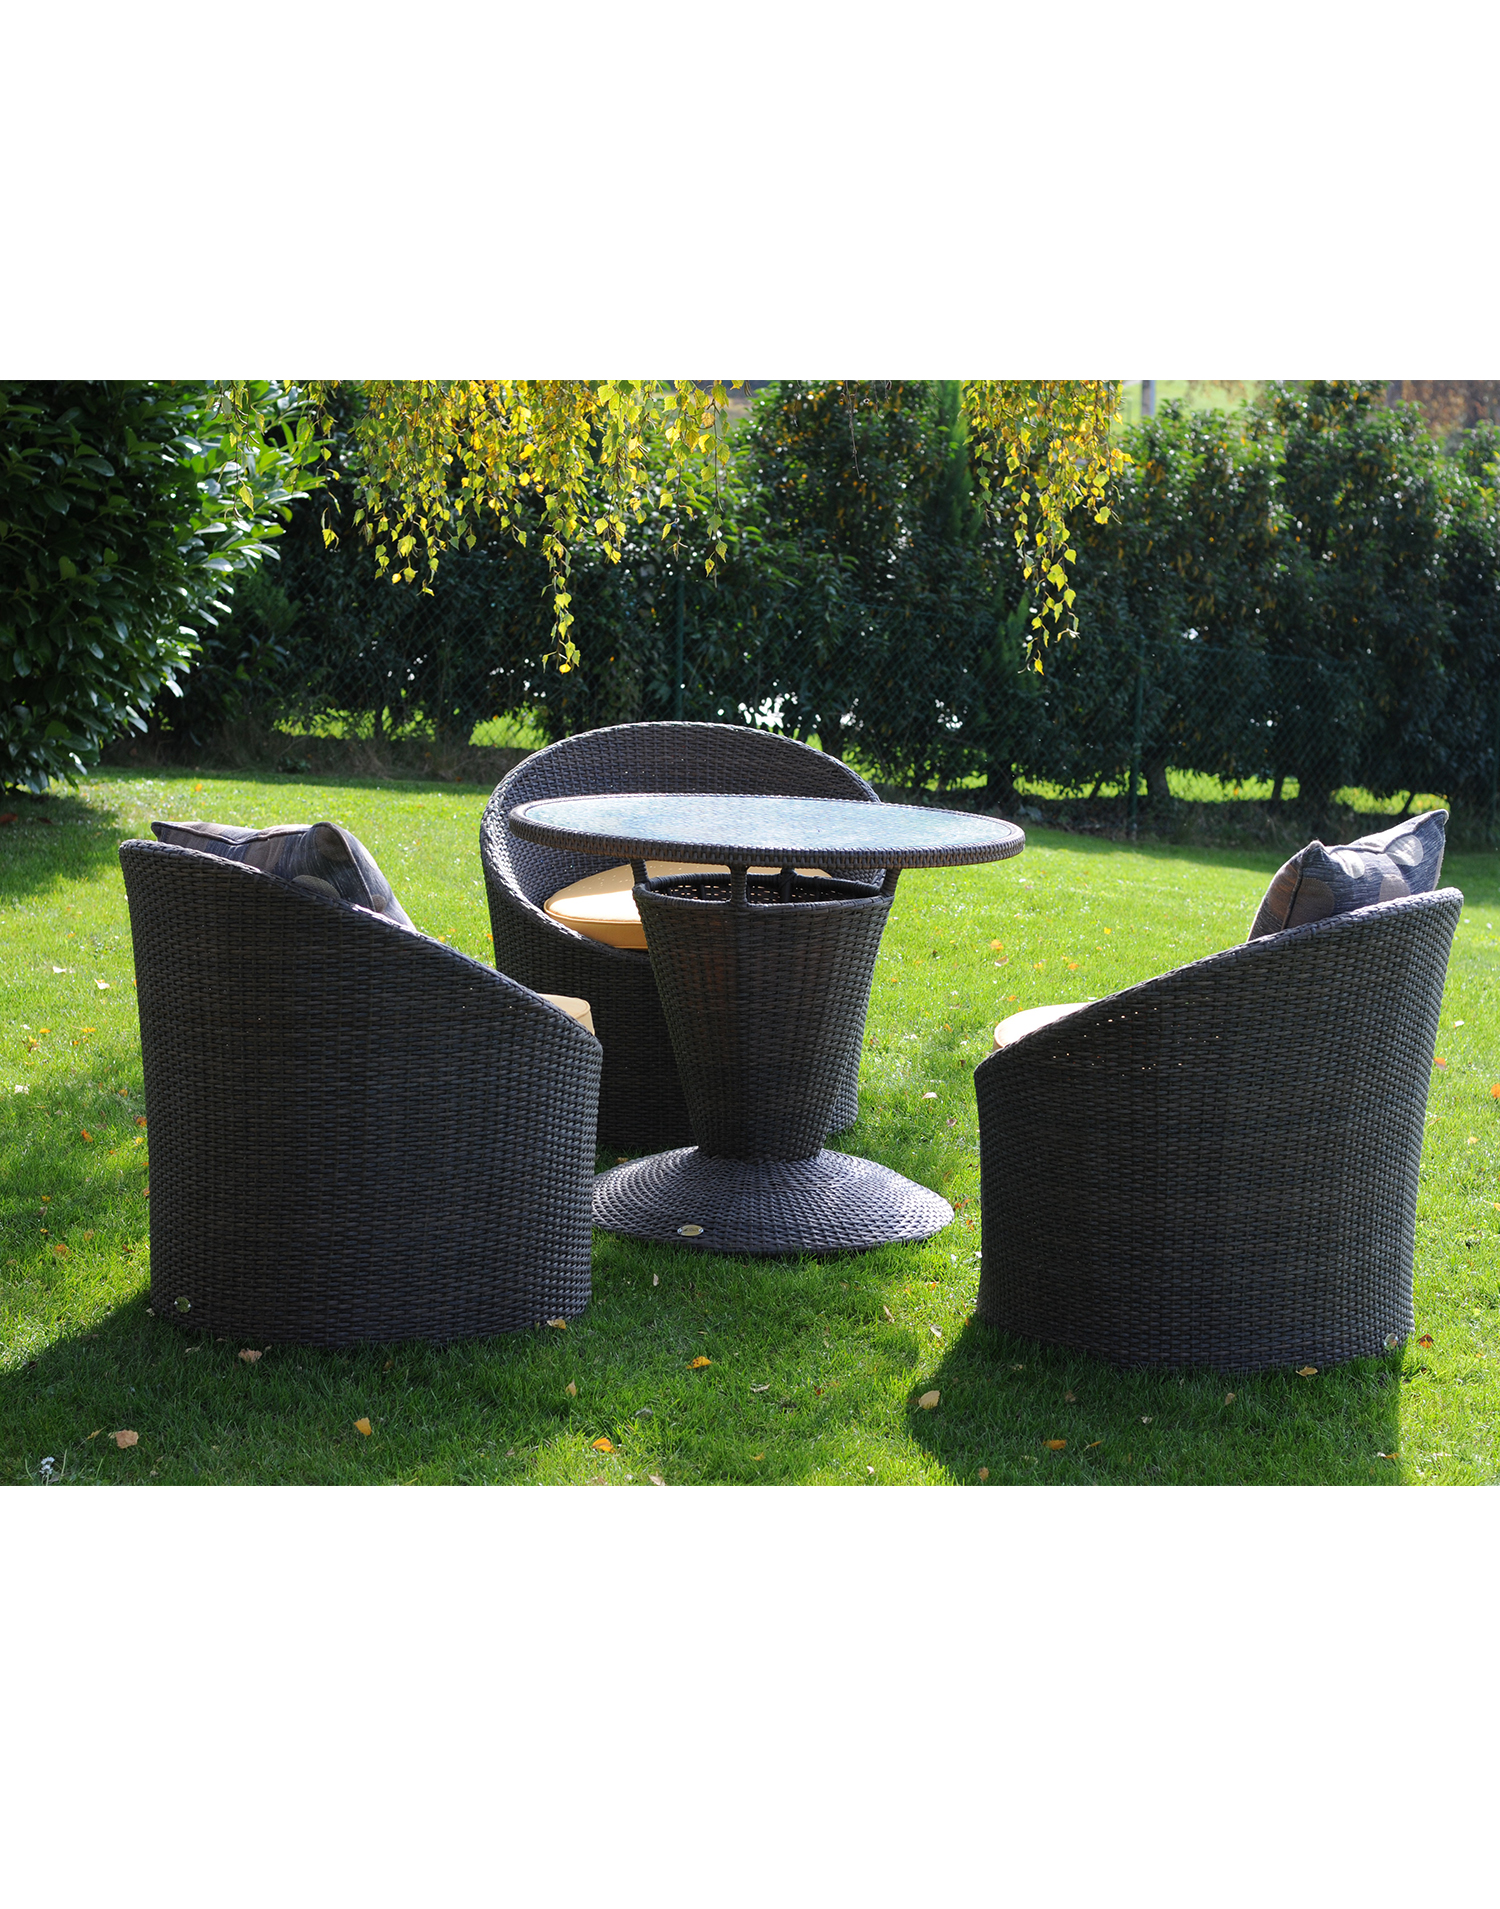 gartenm bel plastik set kollektion ideen garten design als inspiration mit beispielen von. Black Bedroom Furniture Sets. Home Design Ideas